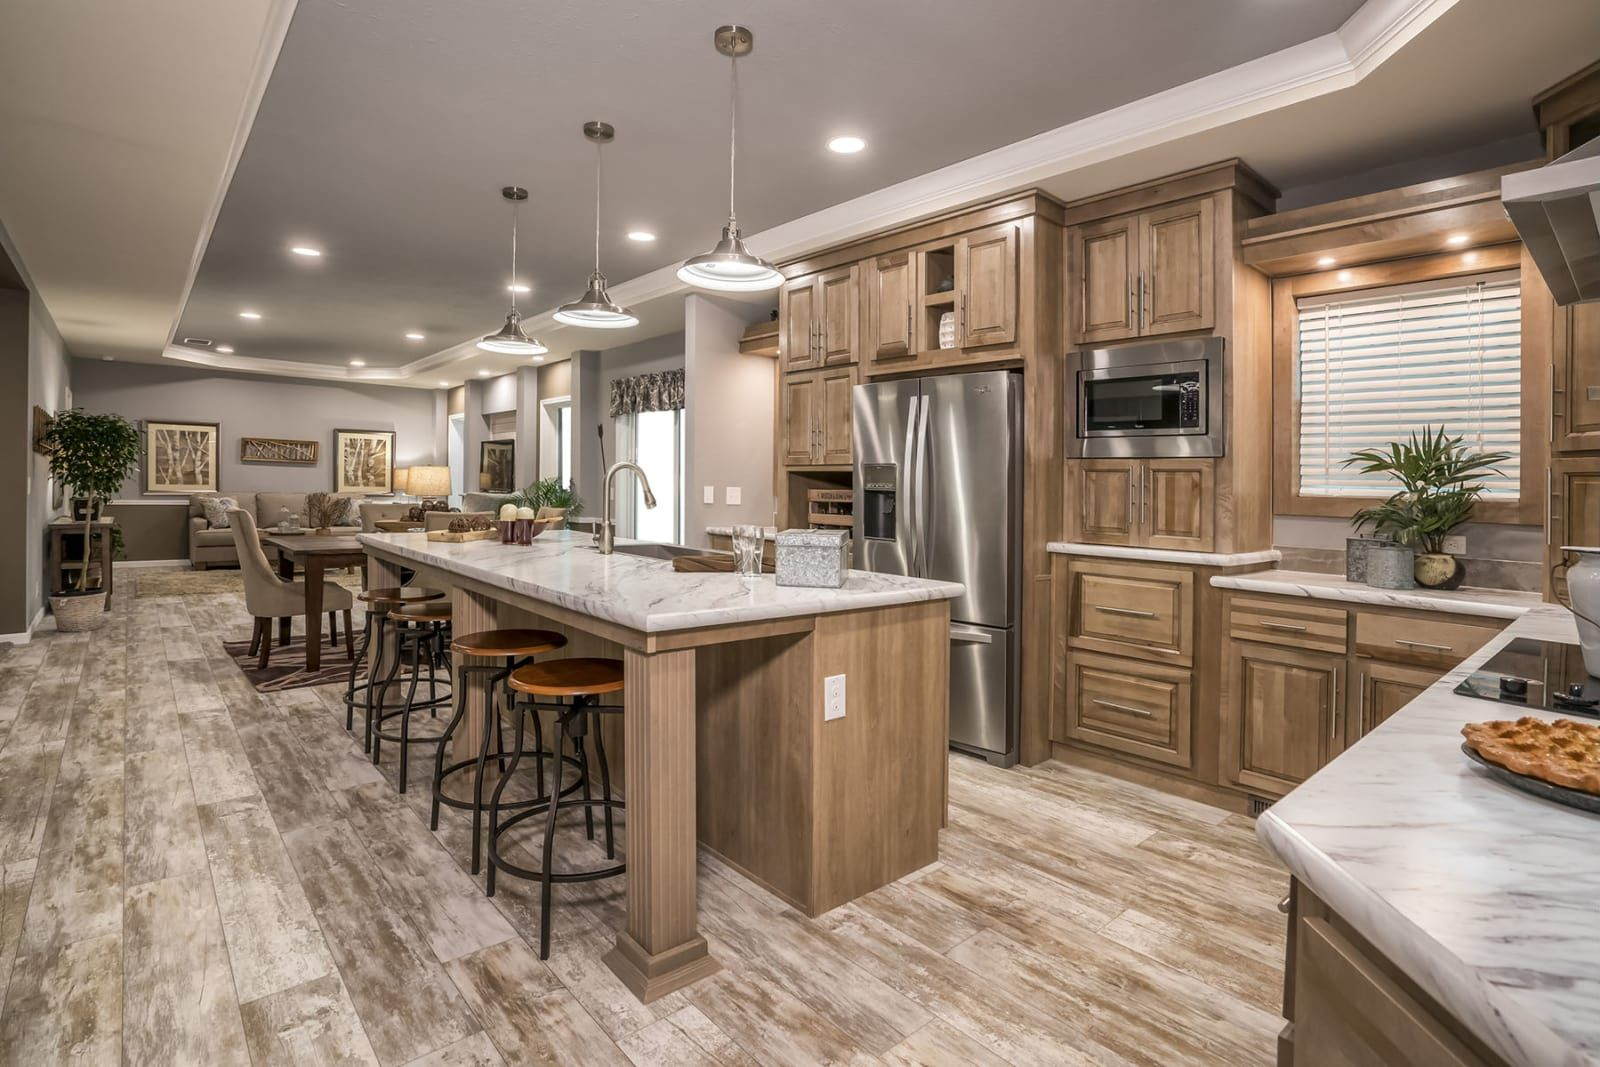 Gourmet kitchen with stainless steel appliances, pendant lighting ...